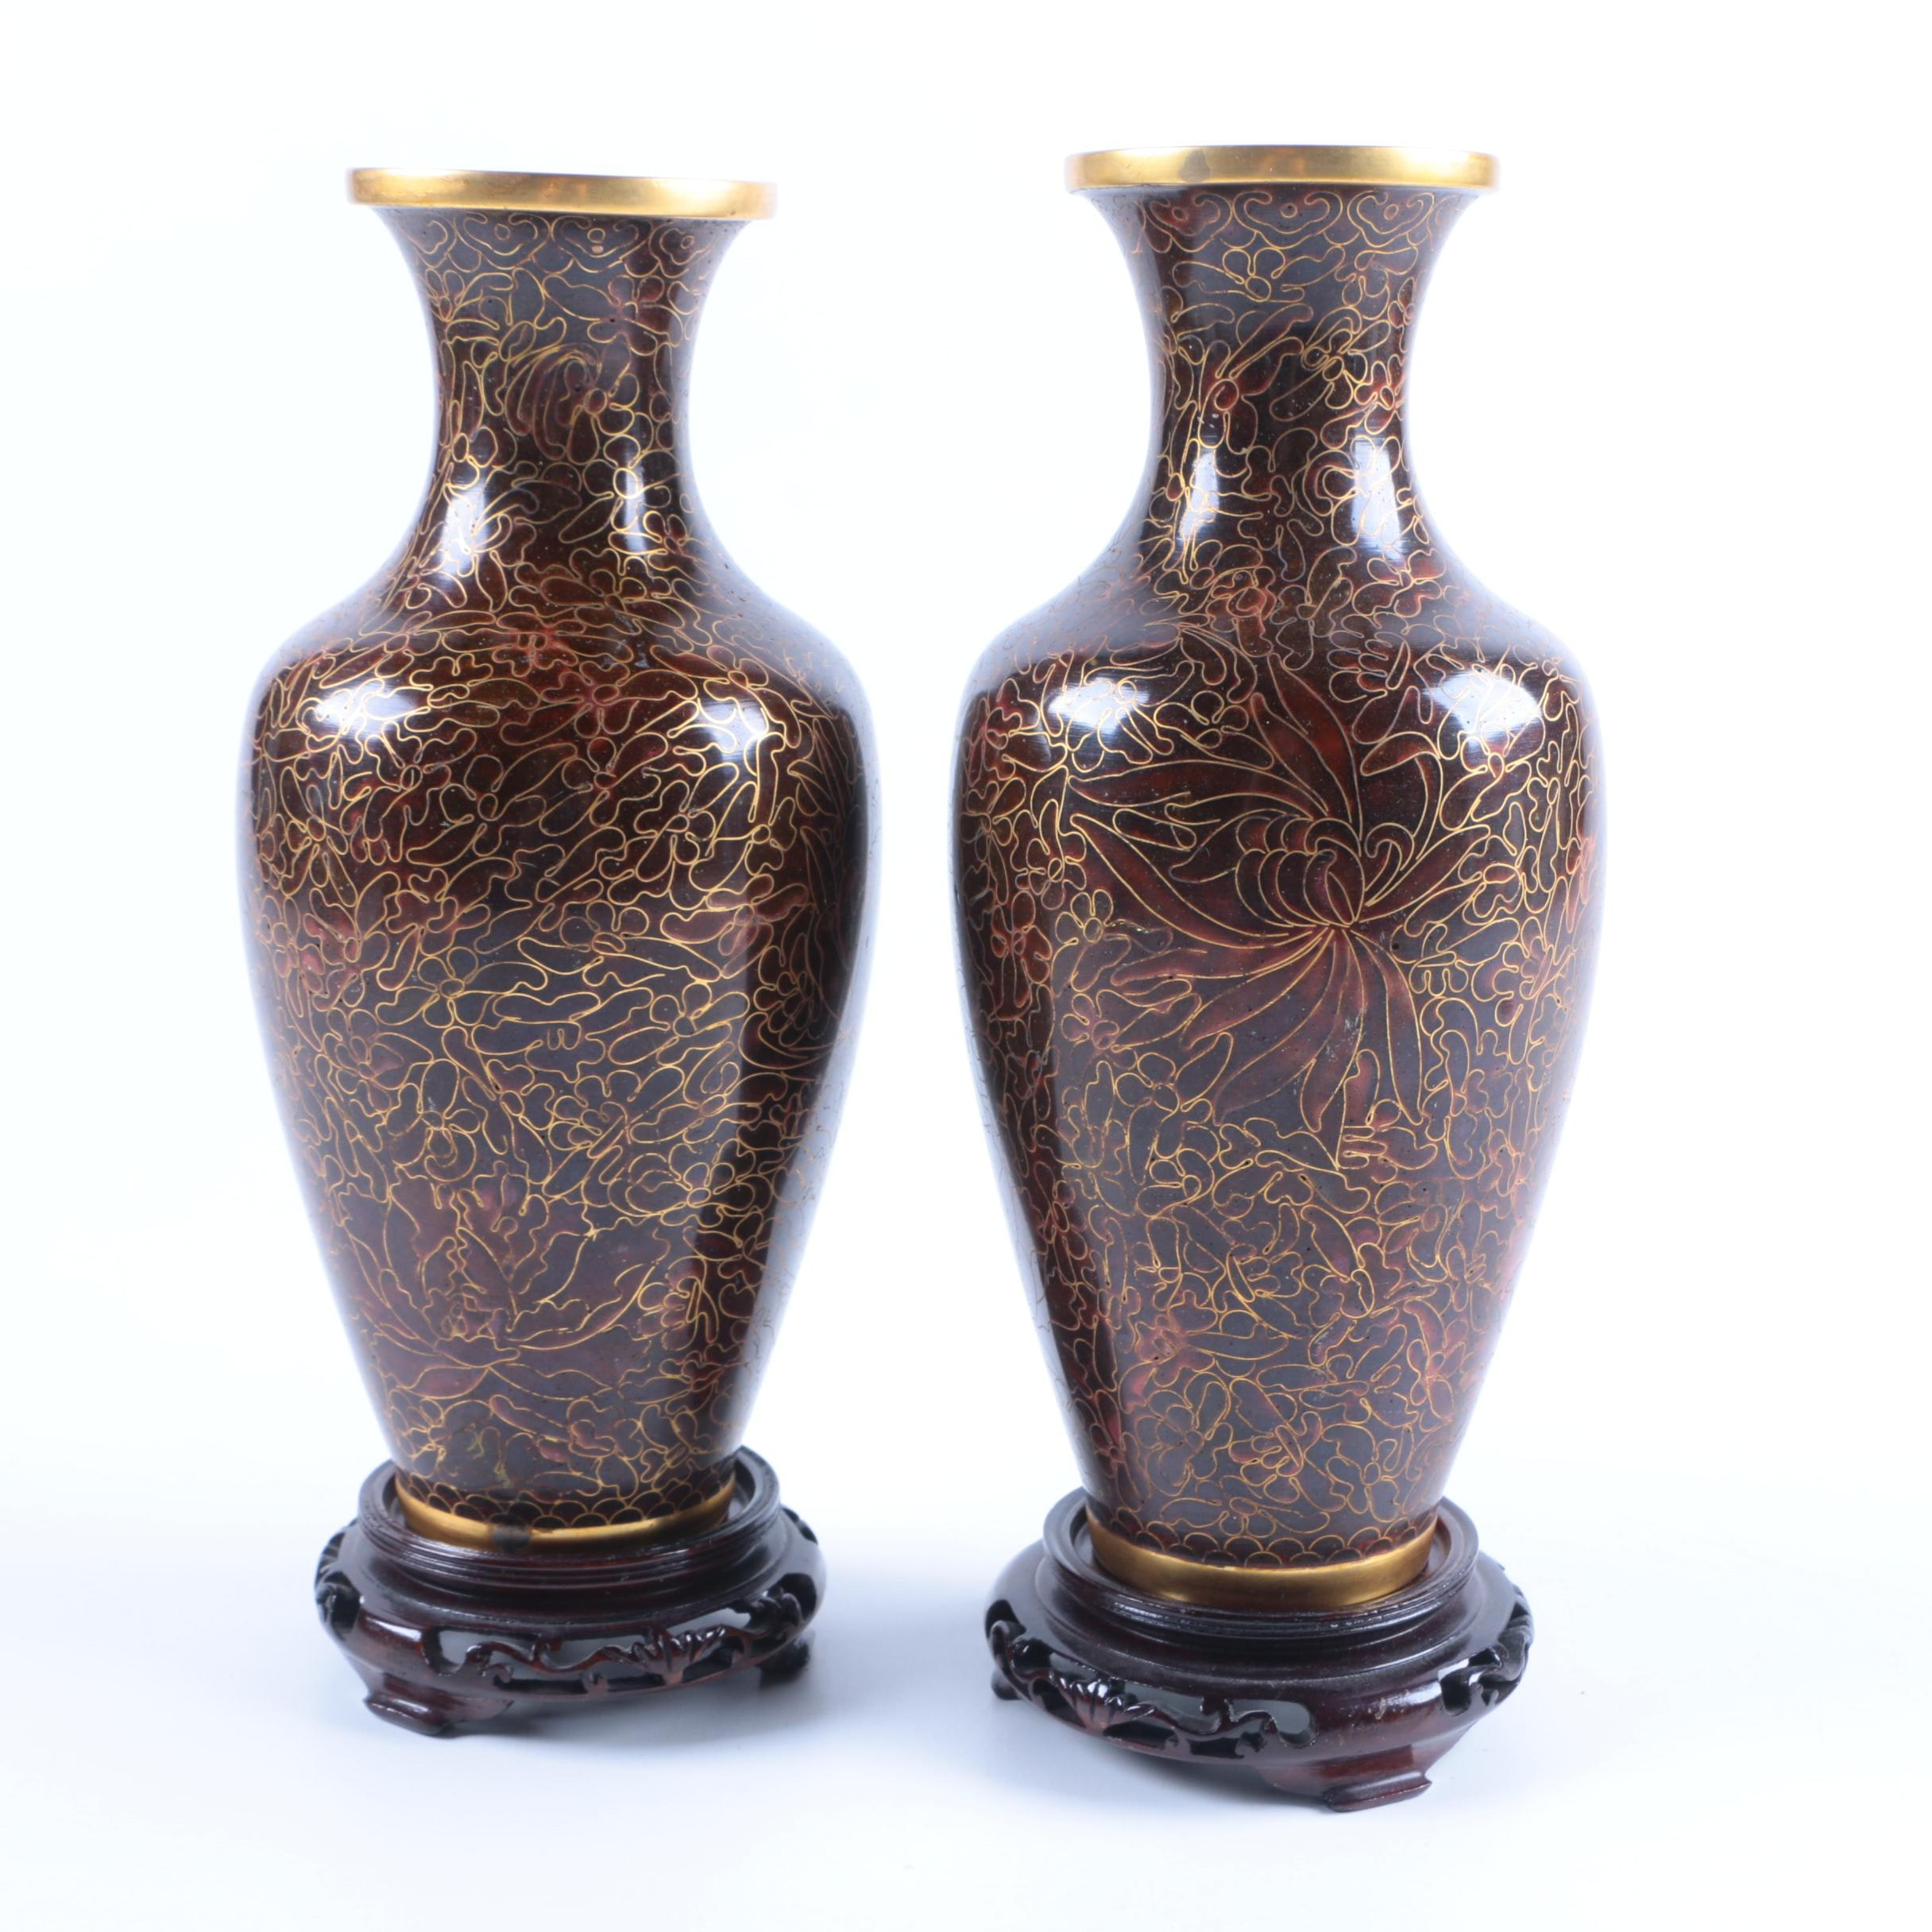 Pair of Chinese Cloisonné Vases with Floral Motif